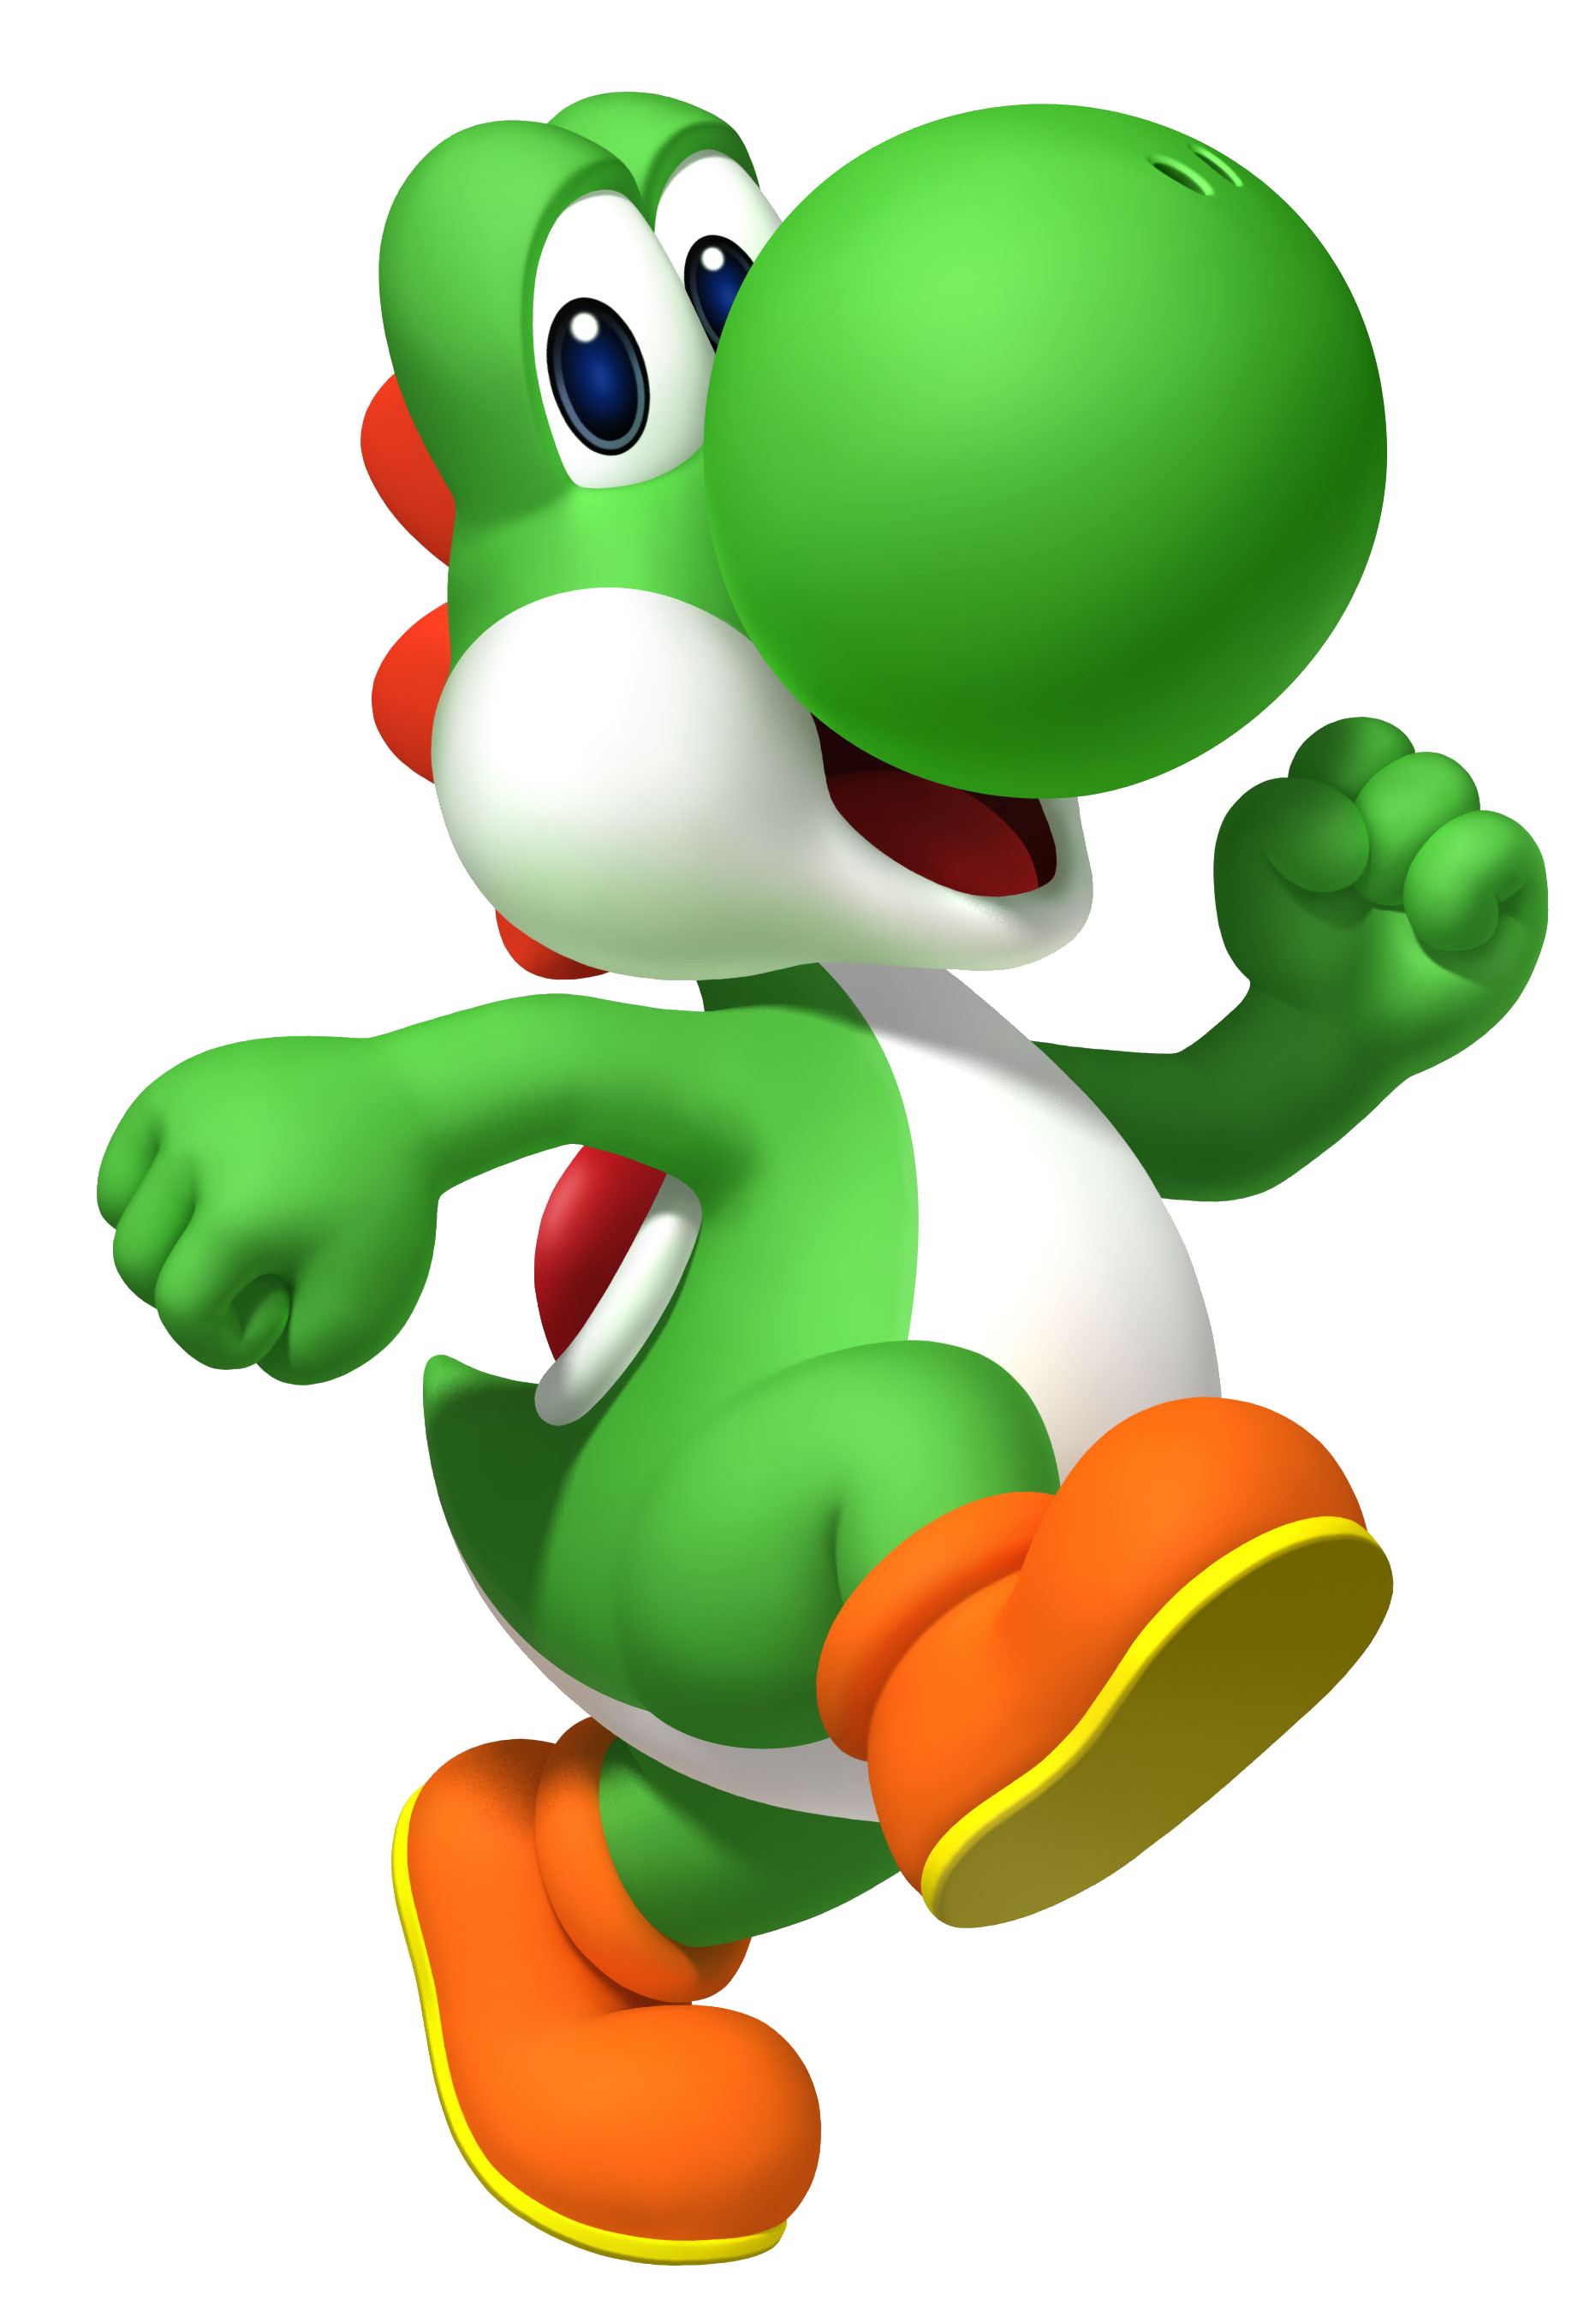 Yoshi png. The united organization toons